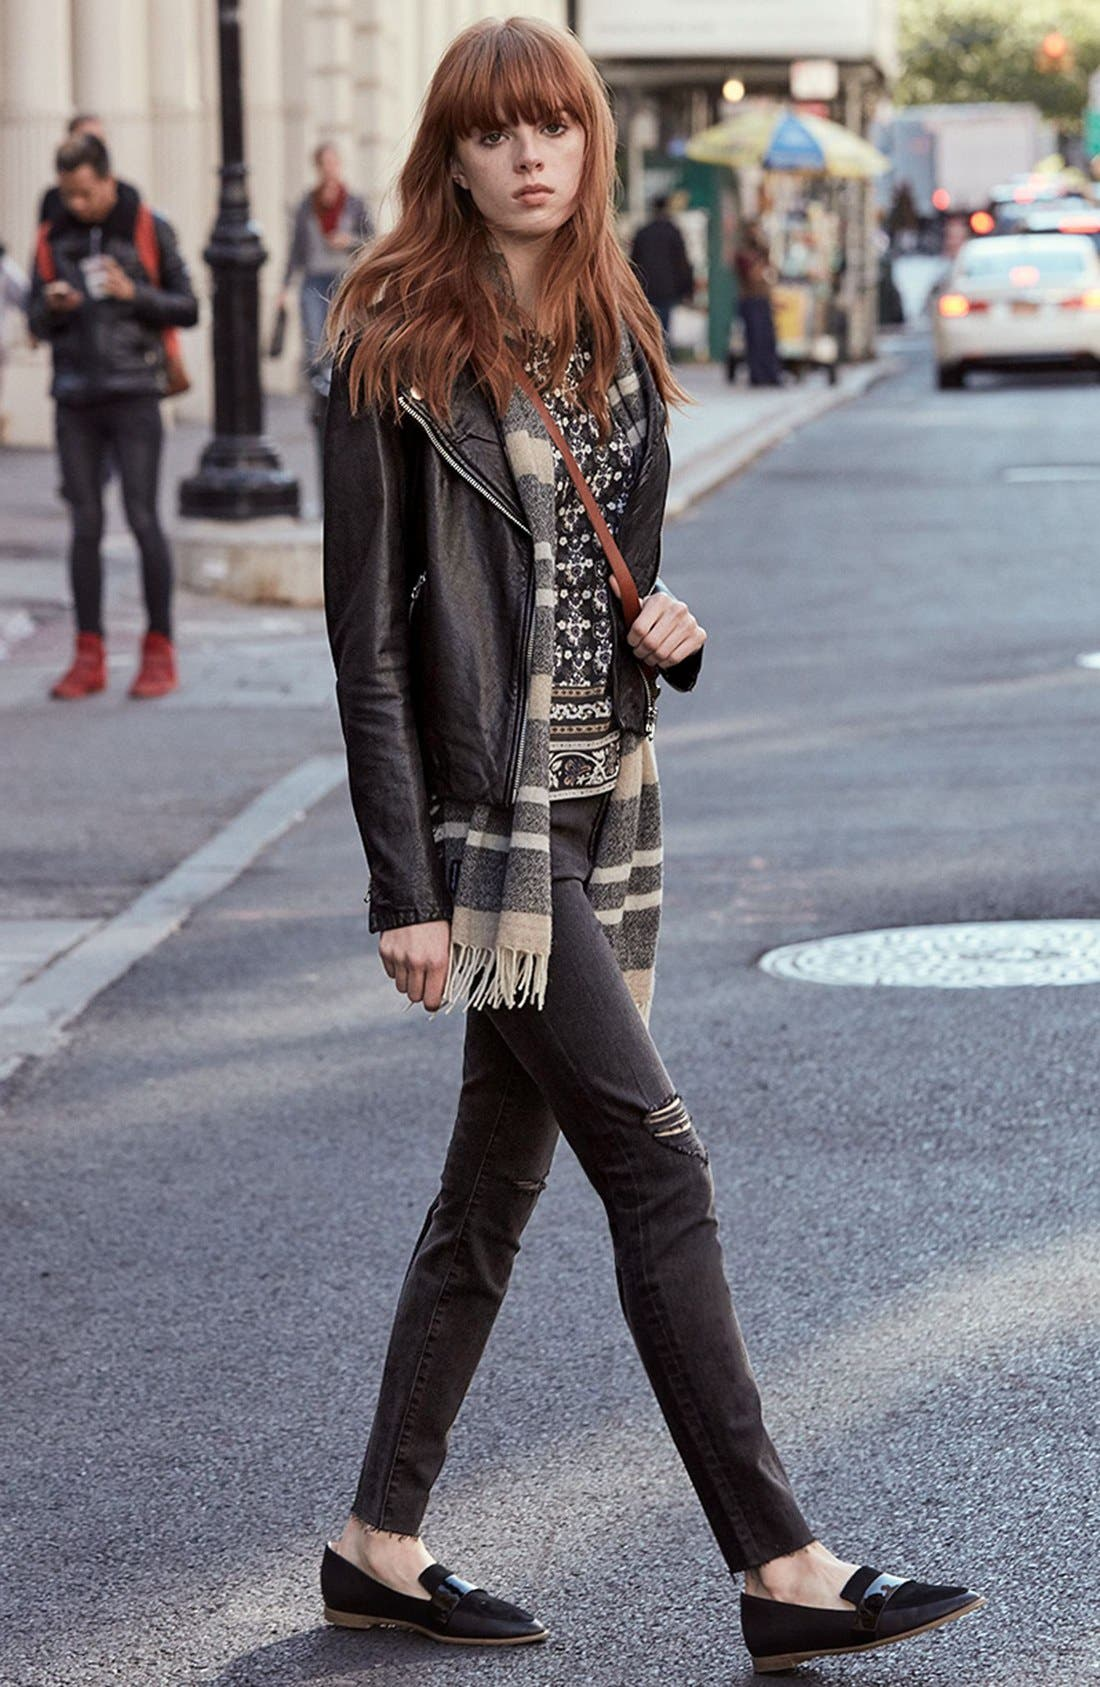 Madewell Tee, Jacket & Jeans Outfit with Accessories